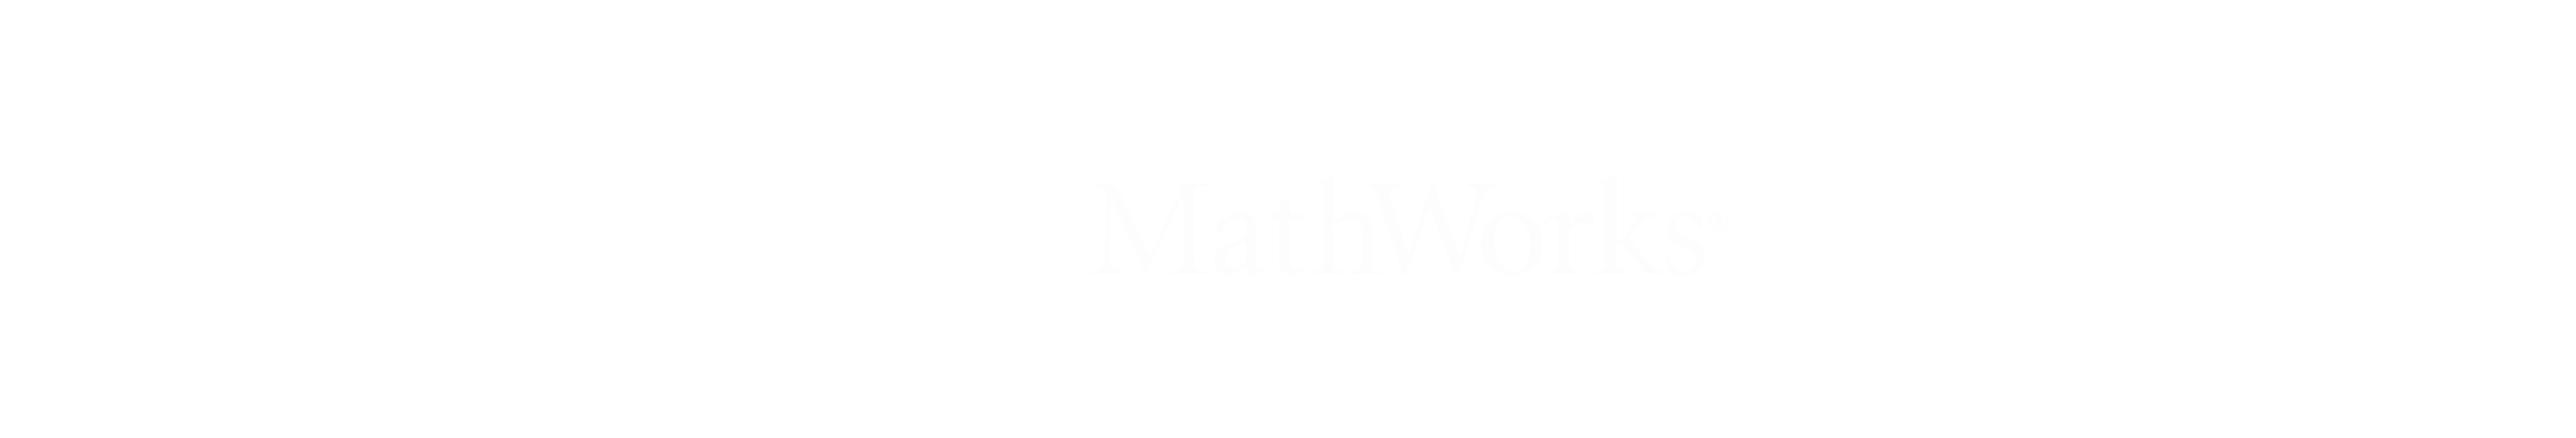 TechSource + MathWorks + Ascendas logos